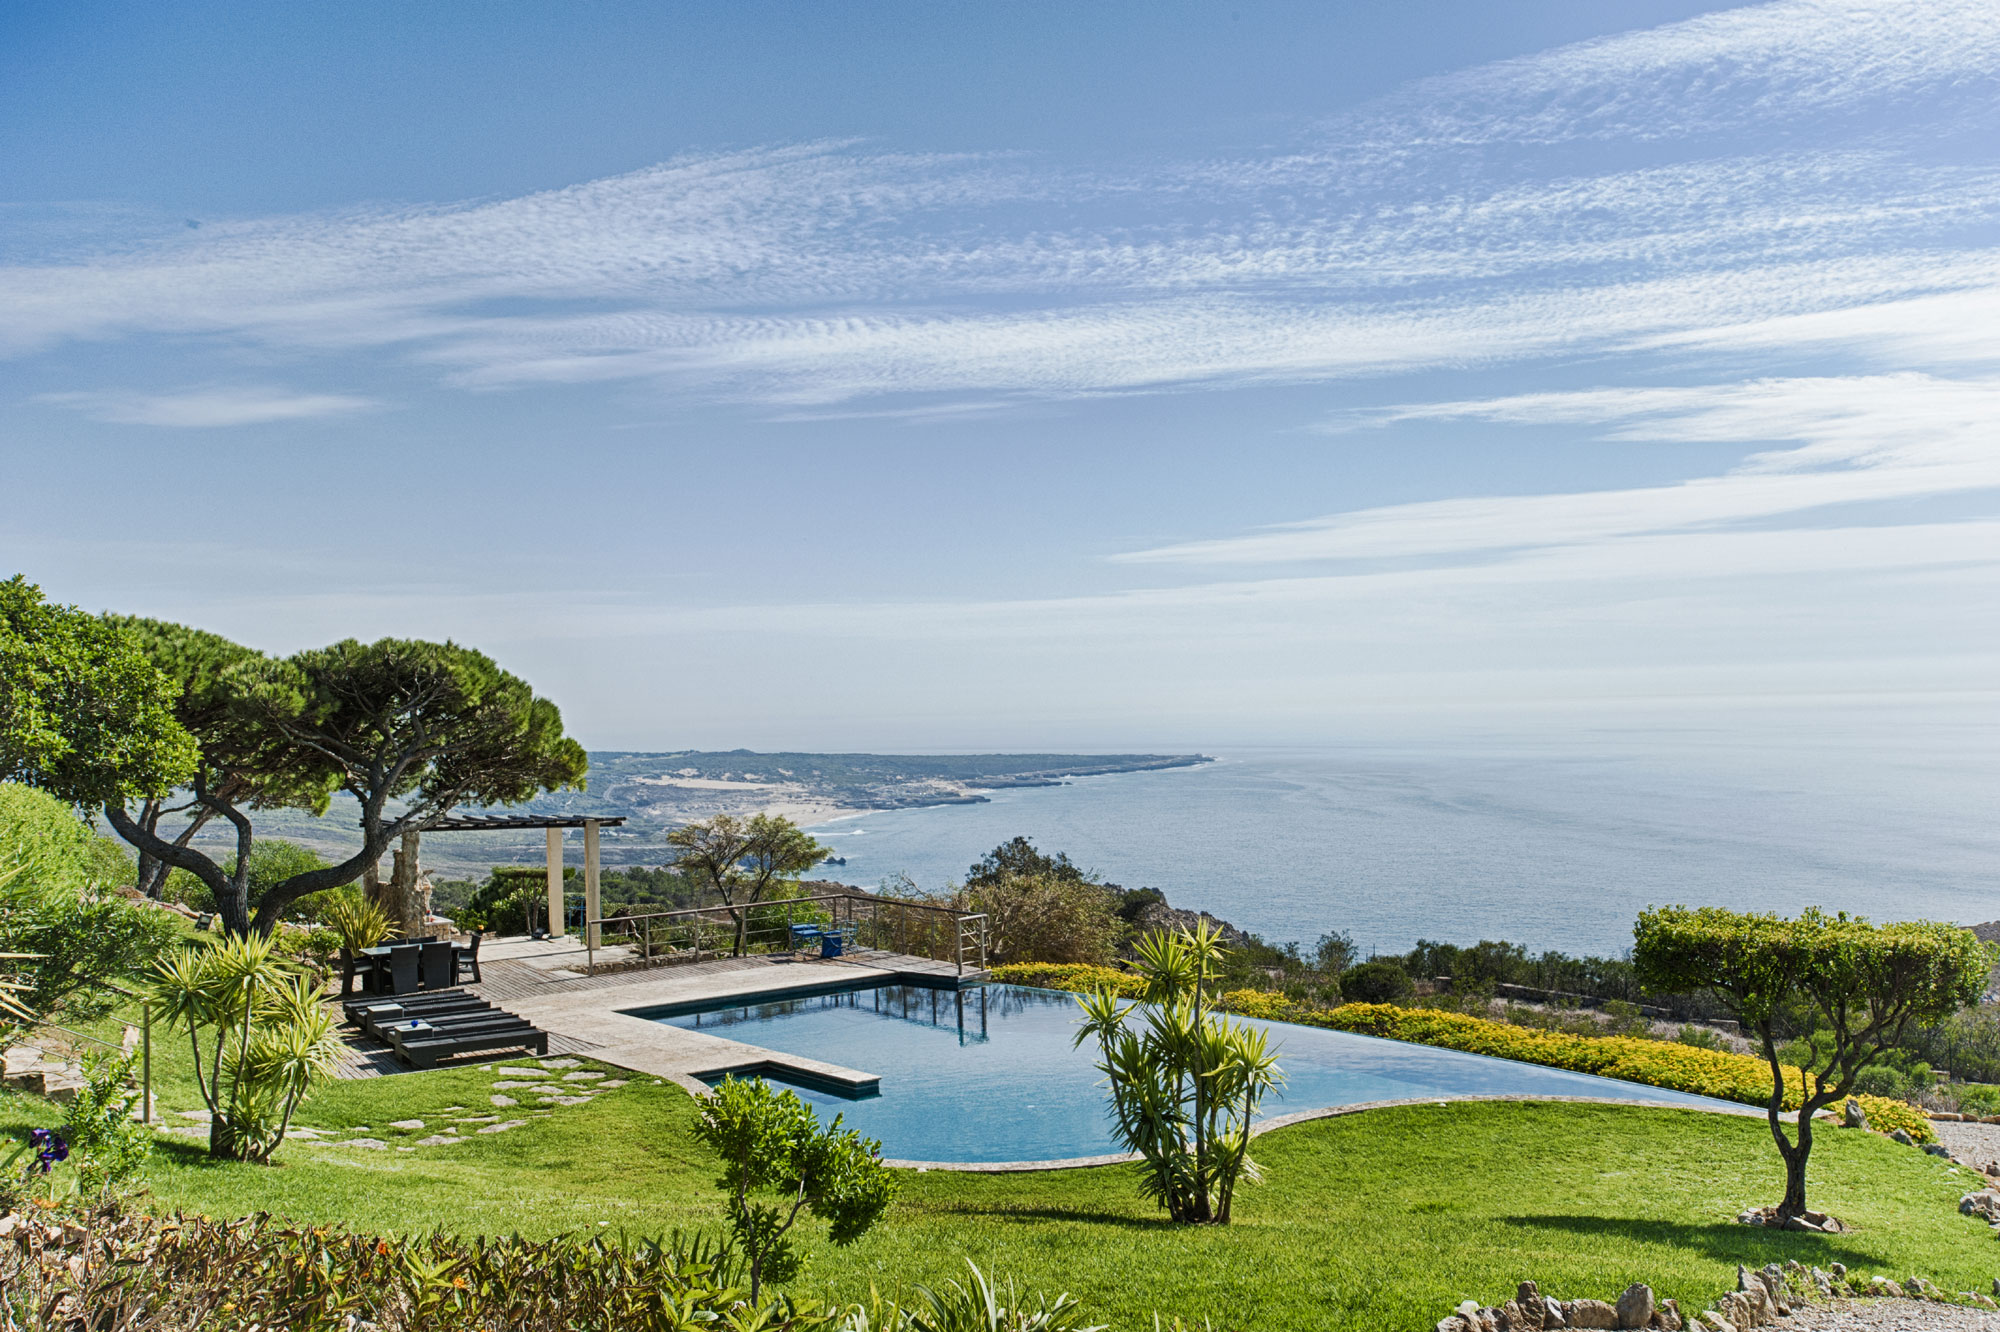 At this contemporary seaside villa, lush gardens and an infinity pool punctuate the sweeping views of Portugal's Sintra coast.